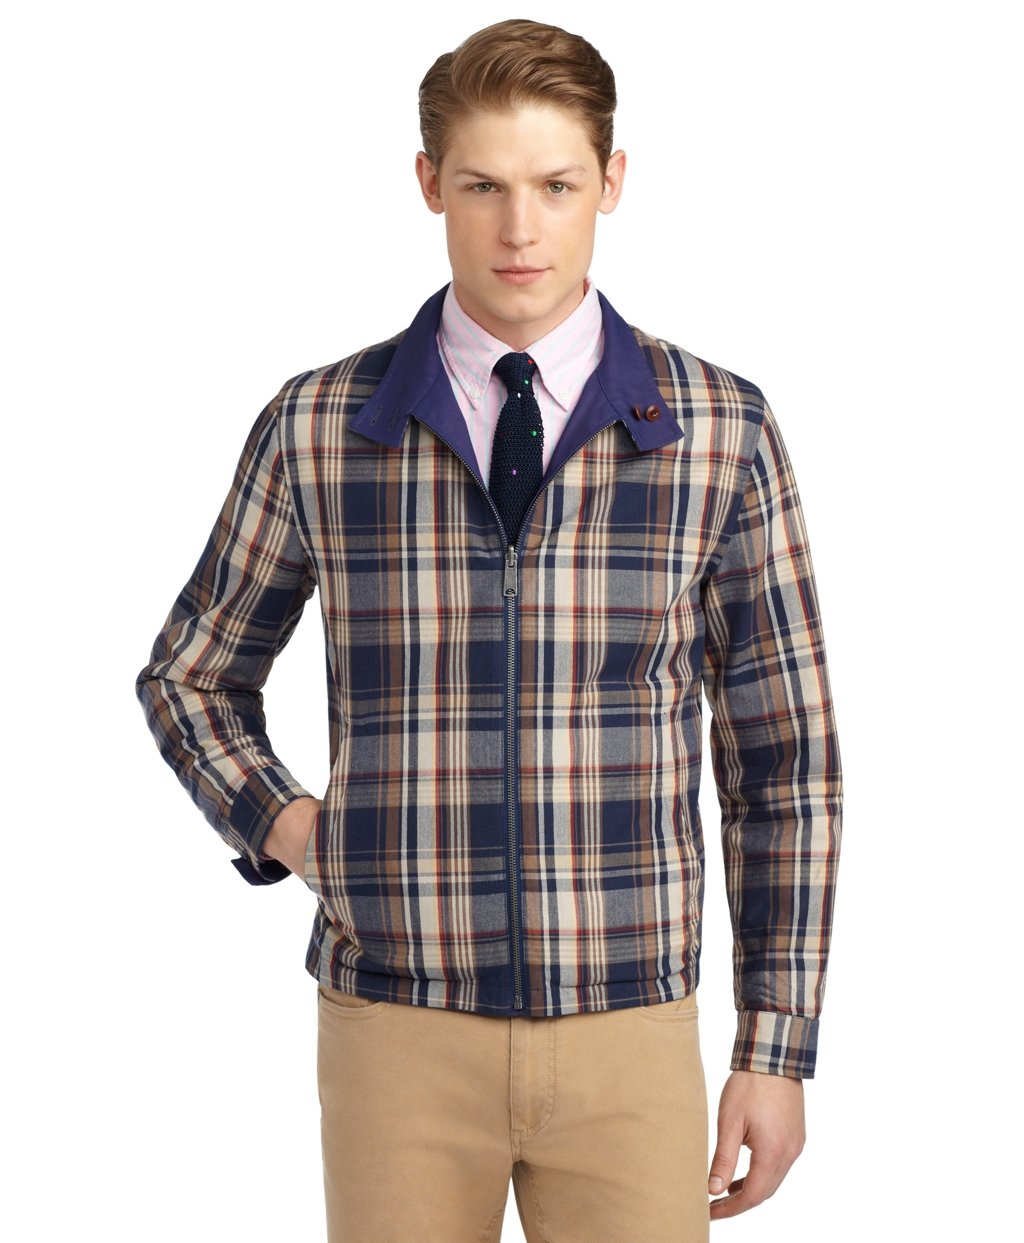 madras single men Find the best llbean madras shirt, slightly fitted short-sleeve at llbean our high quality men's shirts are thoughtfully designed and built to last season after season.